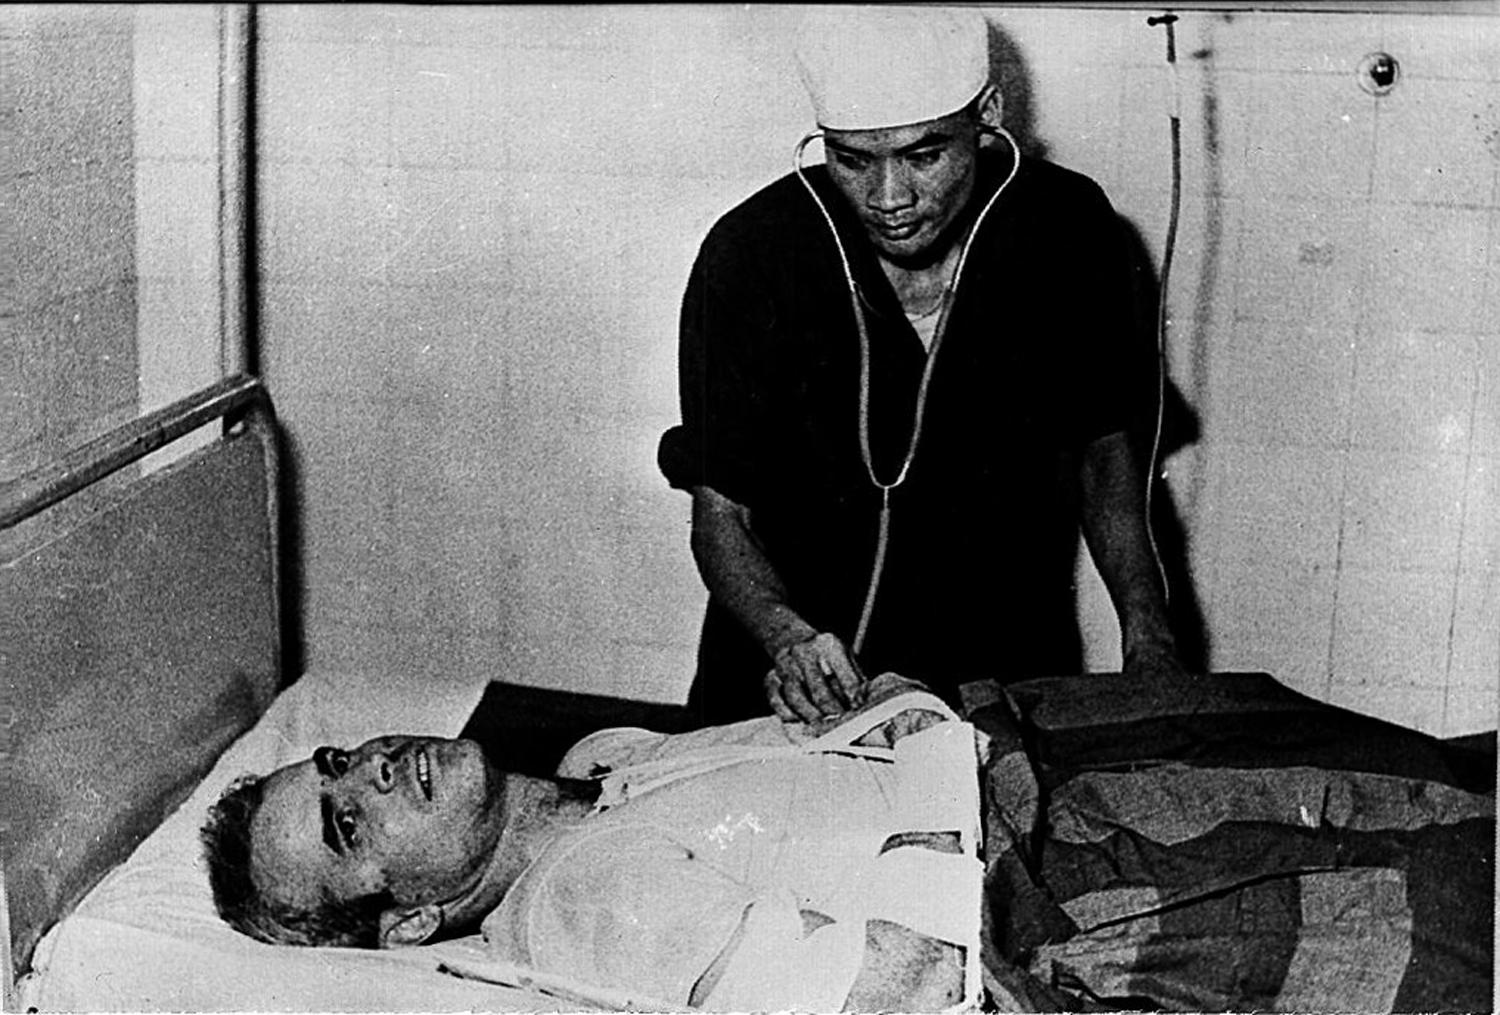 A photo taken in 1967 shows U.S. Navy Airforce Major John McCain being examined by a Vietnamese doctor in Hanoi, Vietnam.